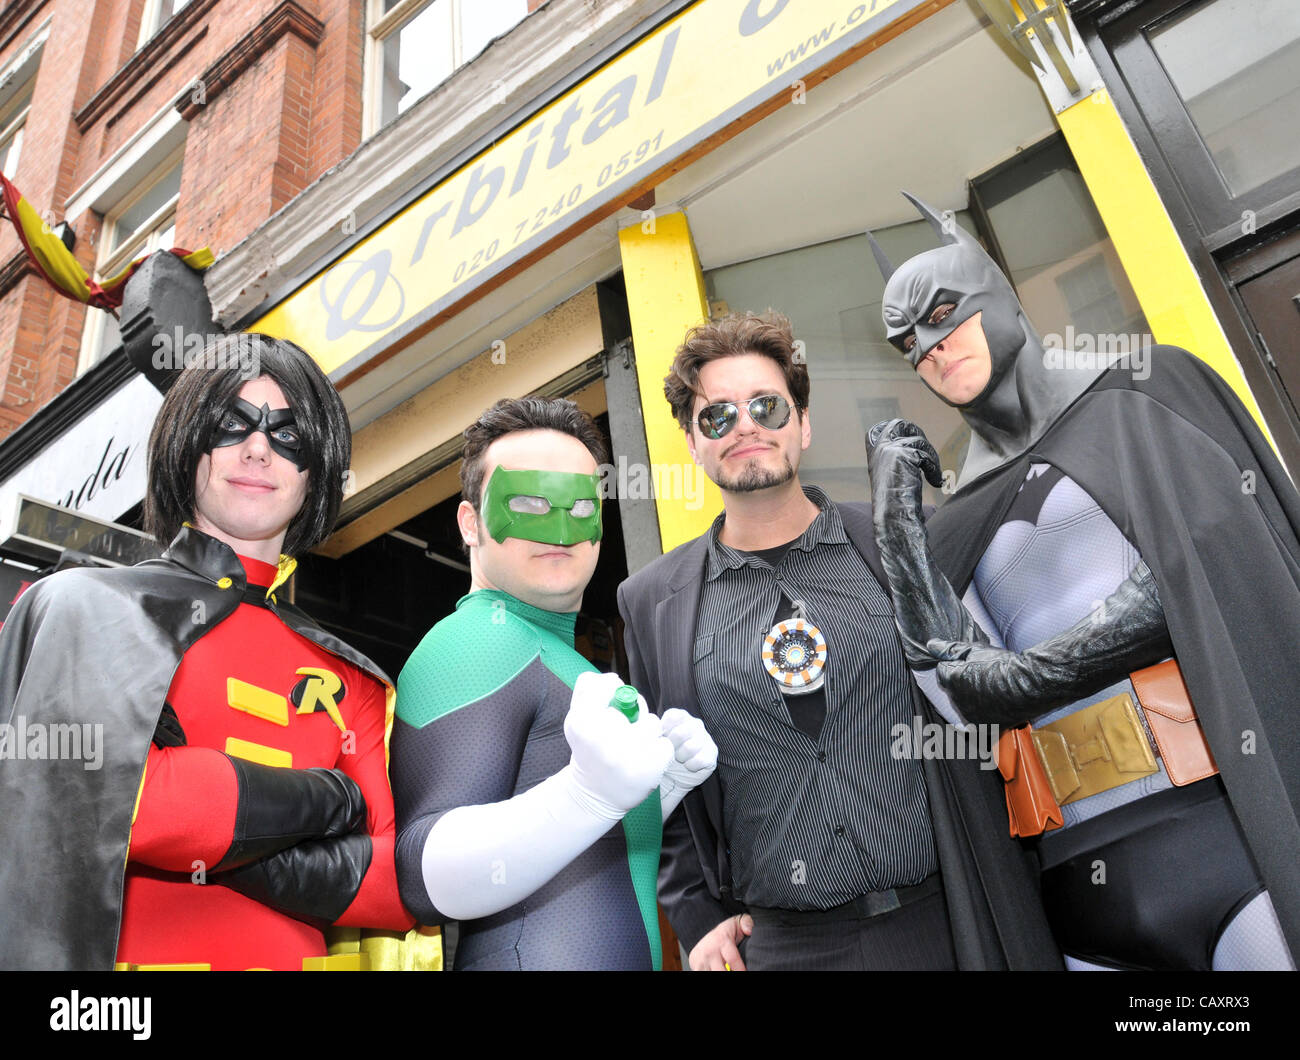 Performers from 'Heroes Alliance UK' dressed as Superheroes, including Batman and Robin as part of the Free - Stock Image